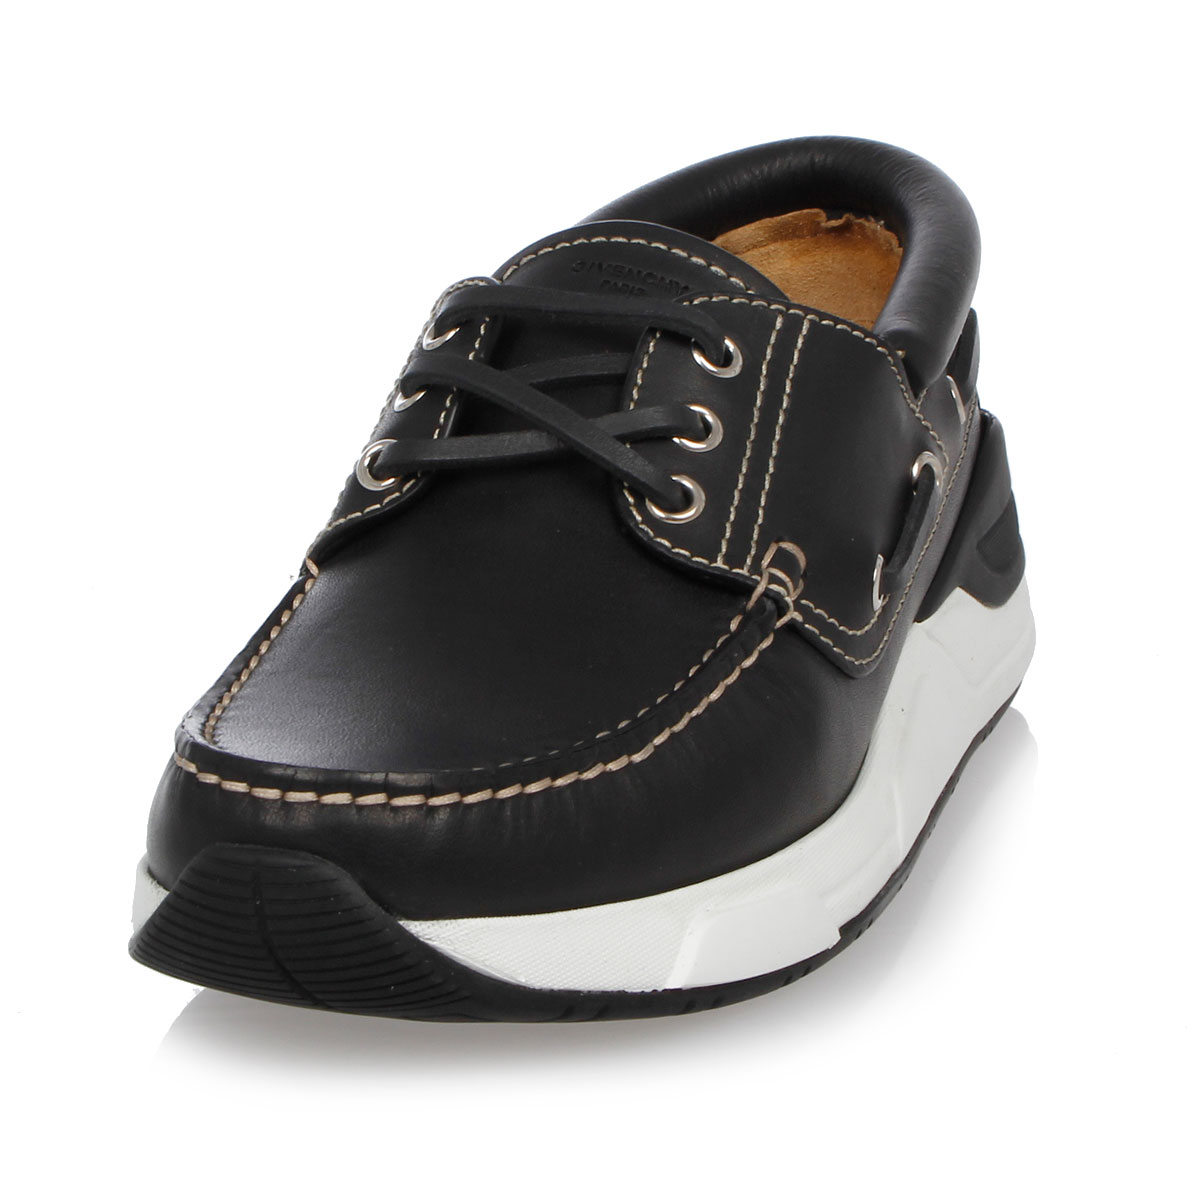 Givenchy Men Leather DERBy Shoes - Spence Outlet